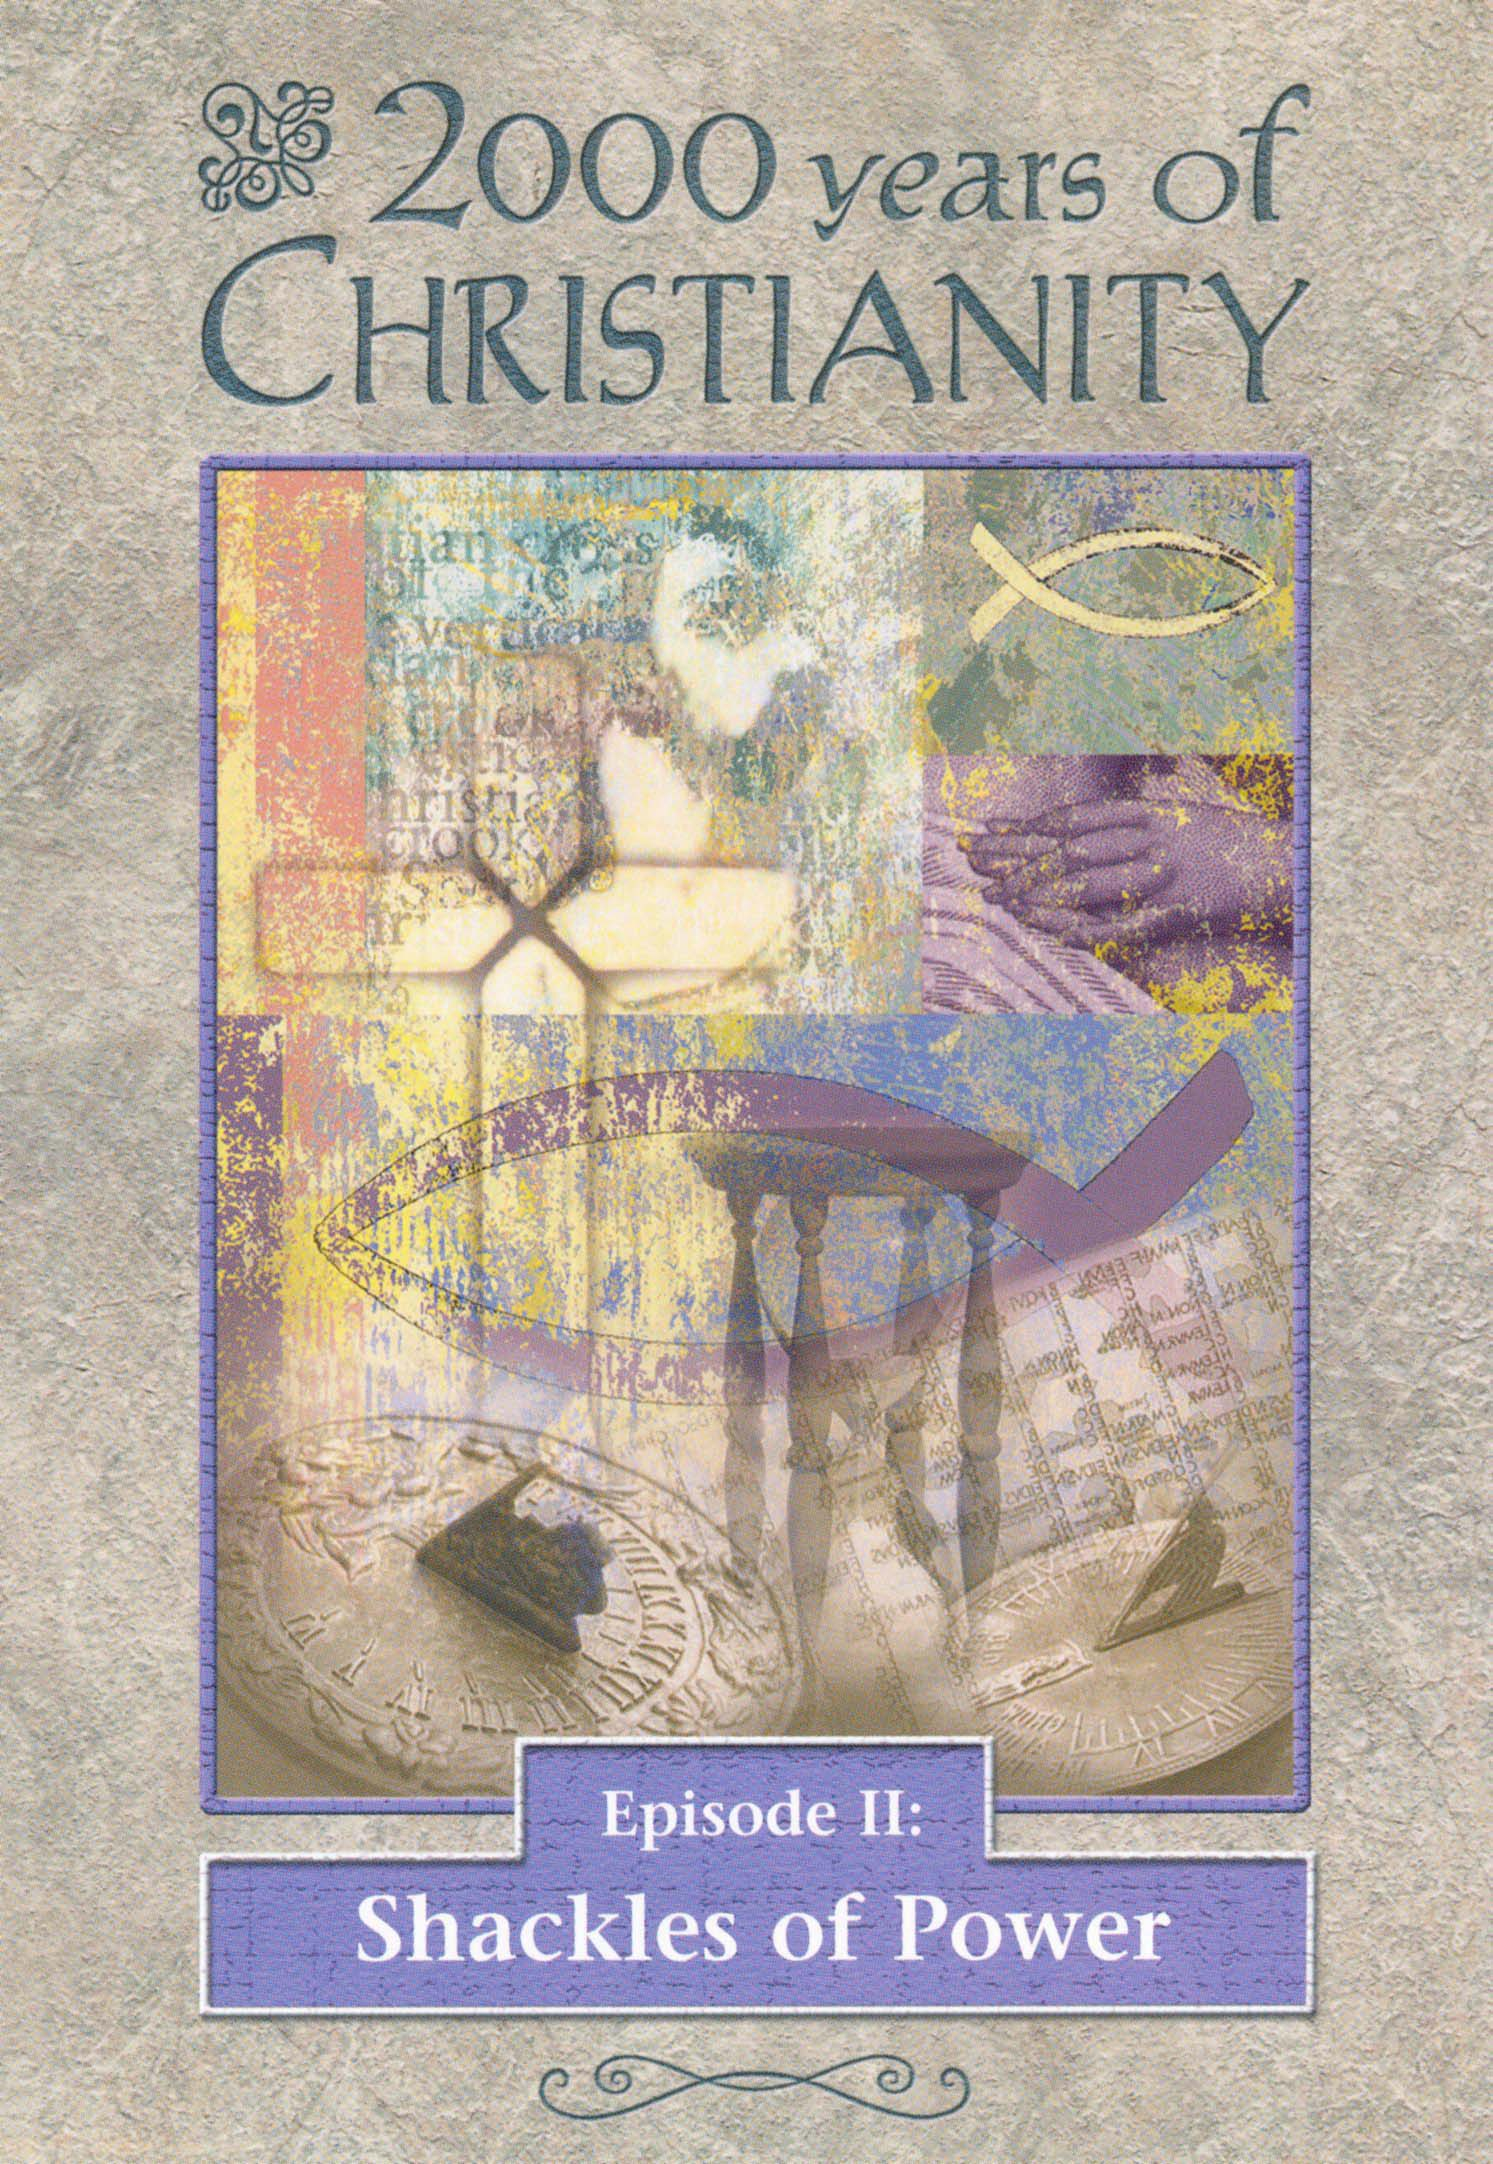 """an overview of the dualism of the substance in science and christianity Perspectives on science and christian faith article antidualist authors, we have chosen instead for this cursory overview to rely on the writings of theolo- gian john cooper who holds a position he calls """"holistic dualism""""2 cooper, too, concedes that in biblical word a material body and an immaterial soul or spirit."""